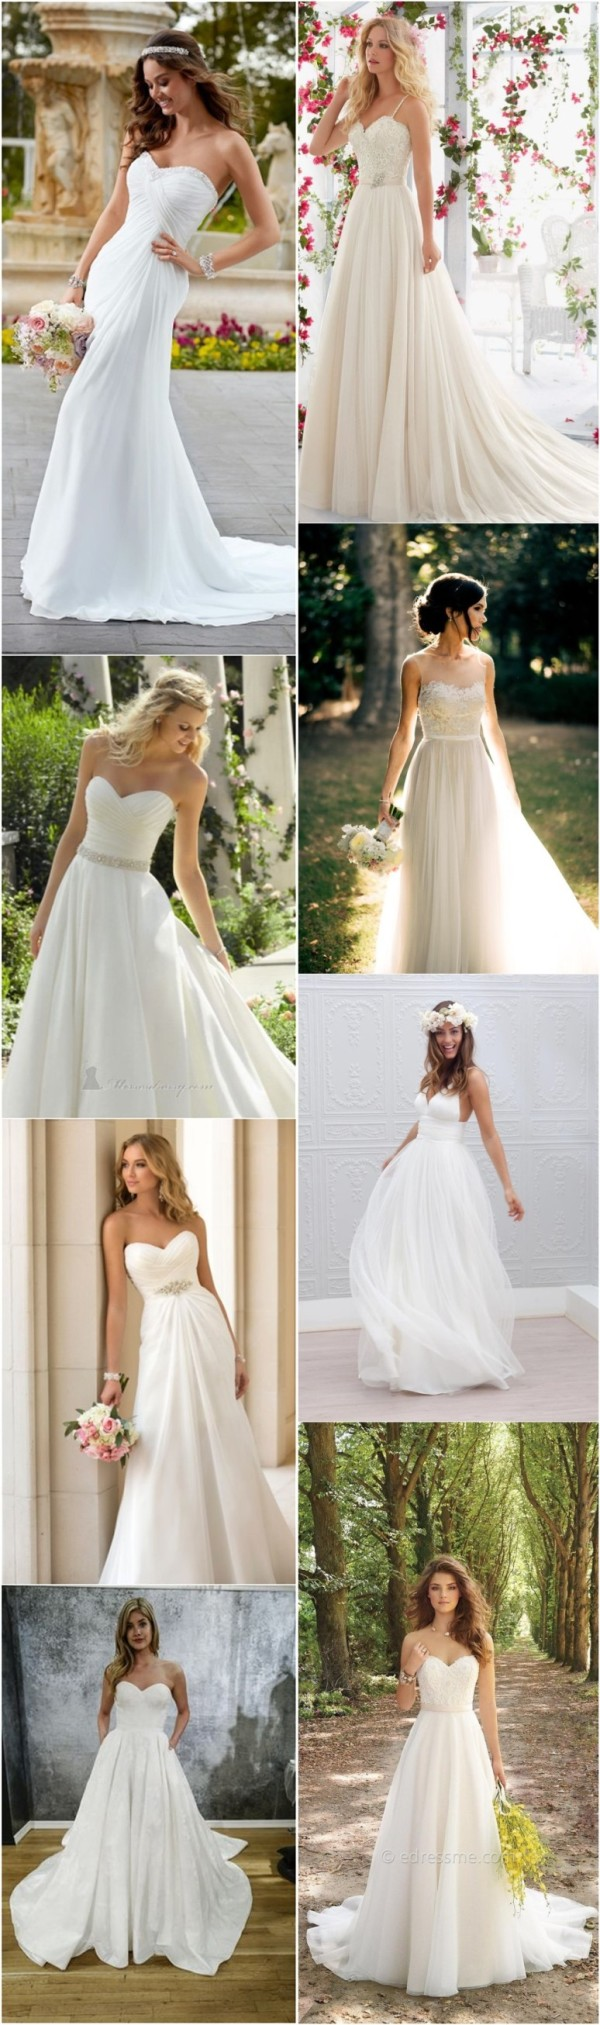 Simple and Elegant white wedding dresses